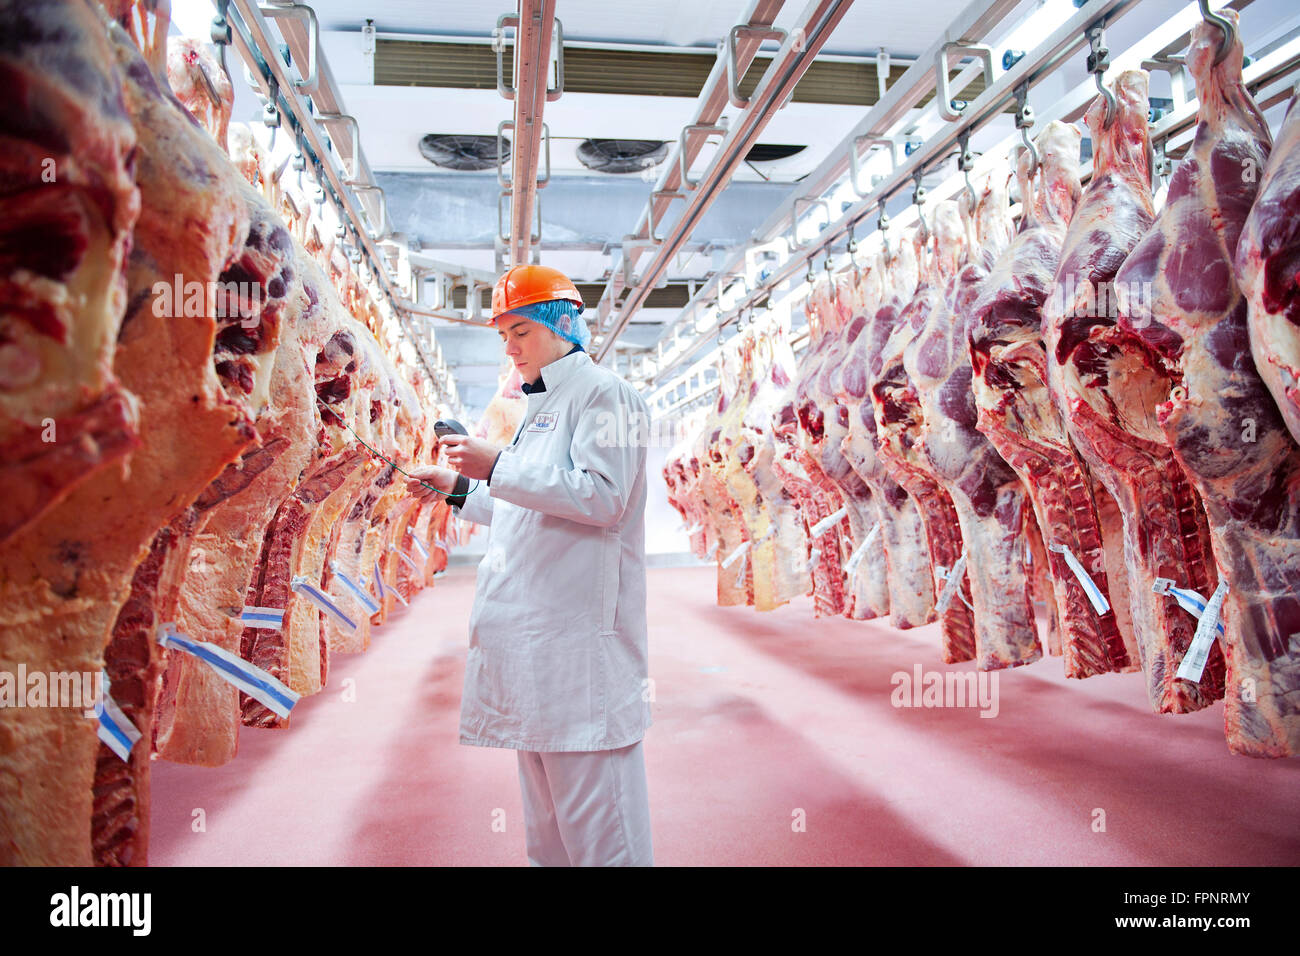 An employee checks the temperature of the carcasses of freshly slaughtered cows hanging awaiting processing in the - Stock Image